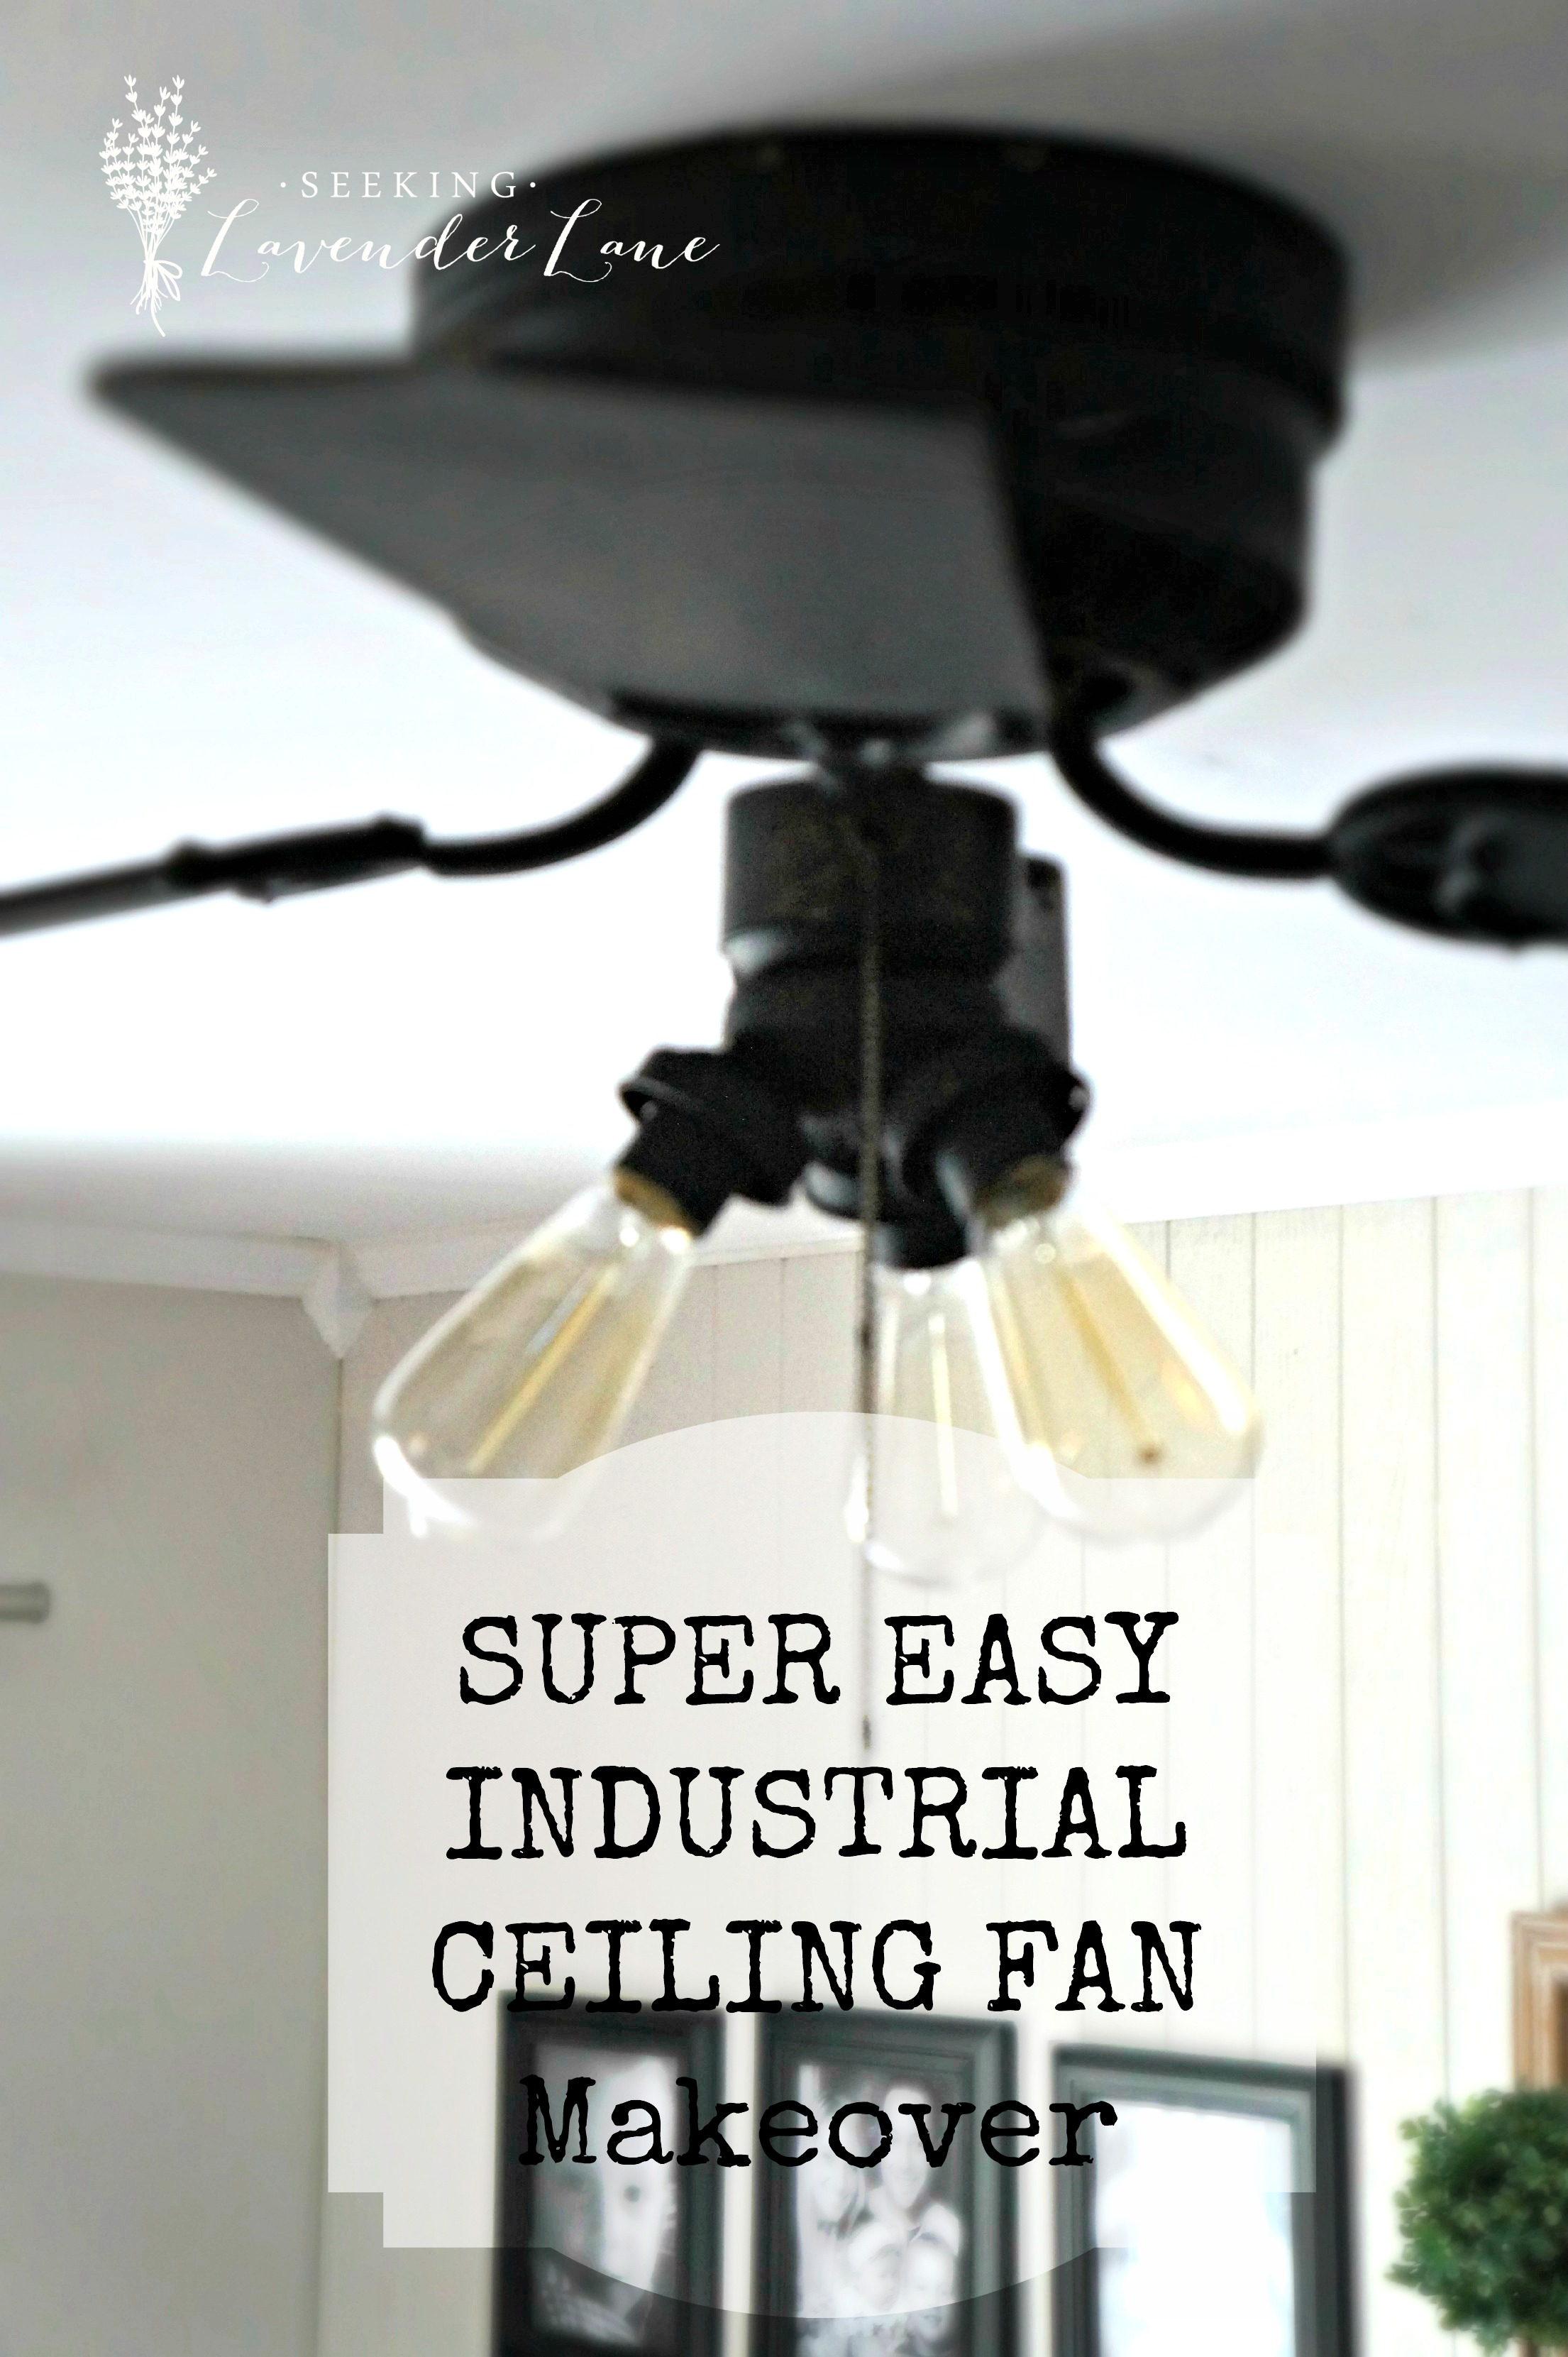 Super Easy Industrial Style Fan Makeover Seeking Lavendar Lane